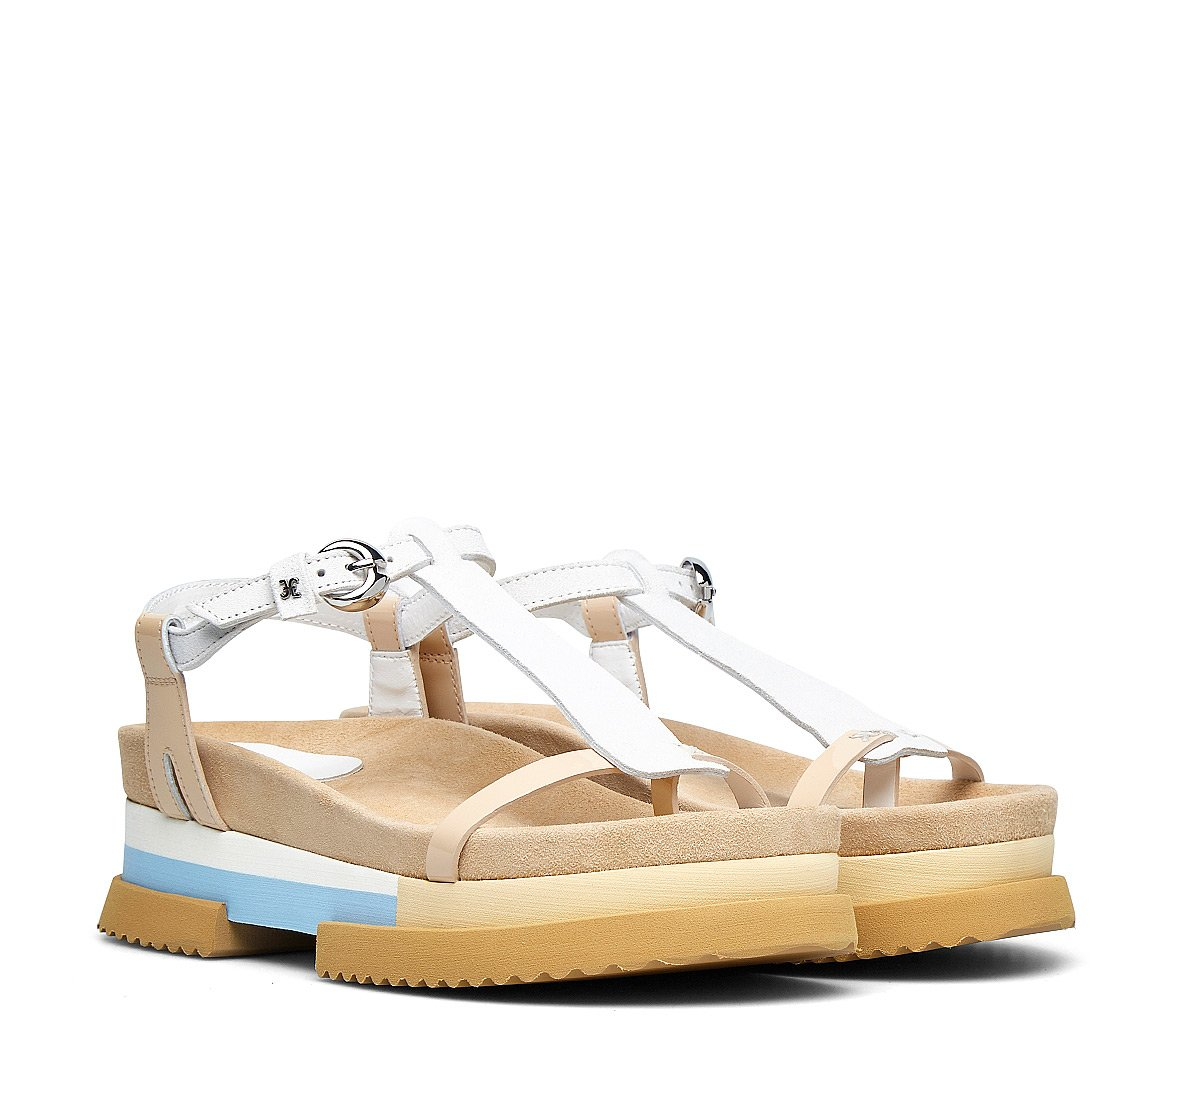 Suede and calfskin sandals